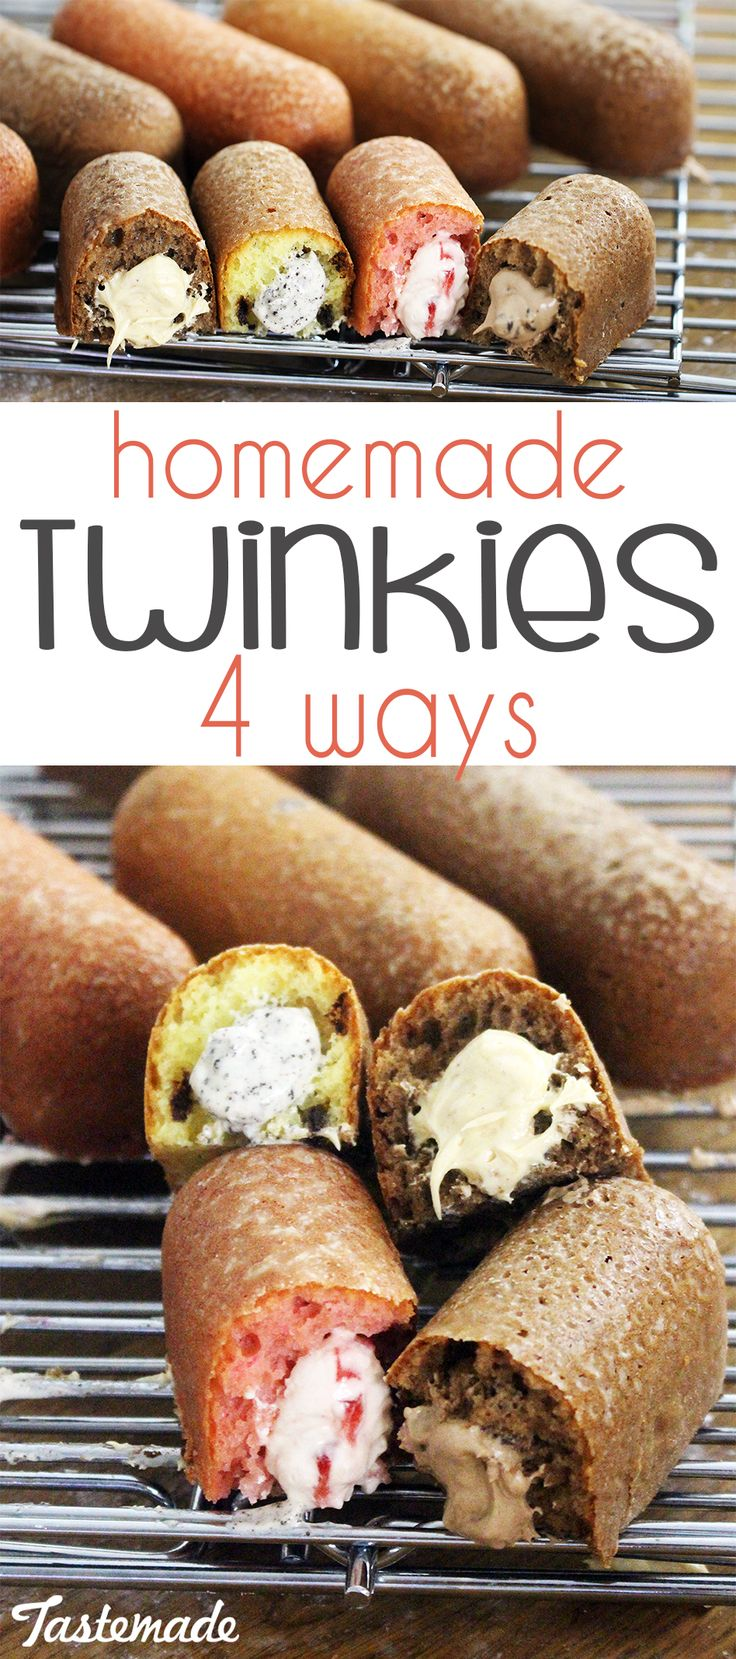 If you like Twinkies, you'll love these 4 little cakes stuffed with flavorful creams like peanut butter, Oreo and more.